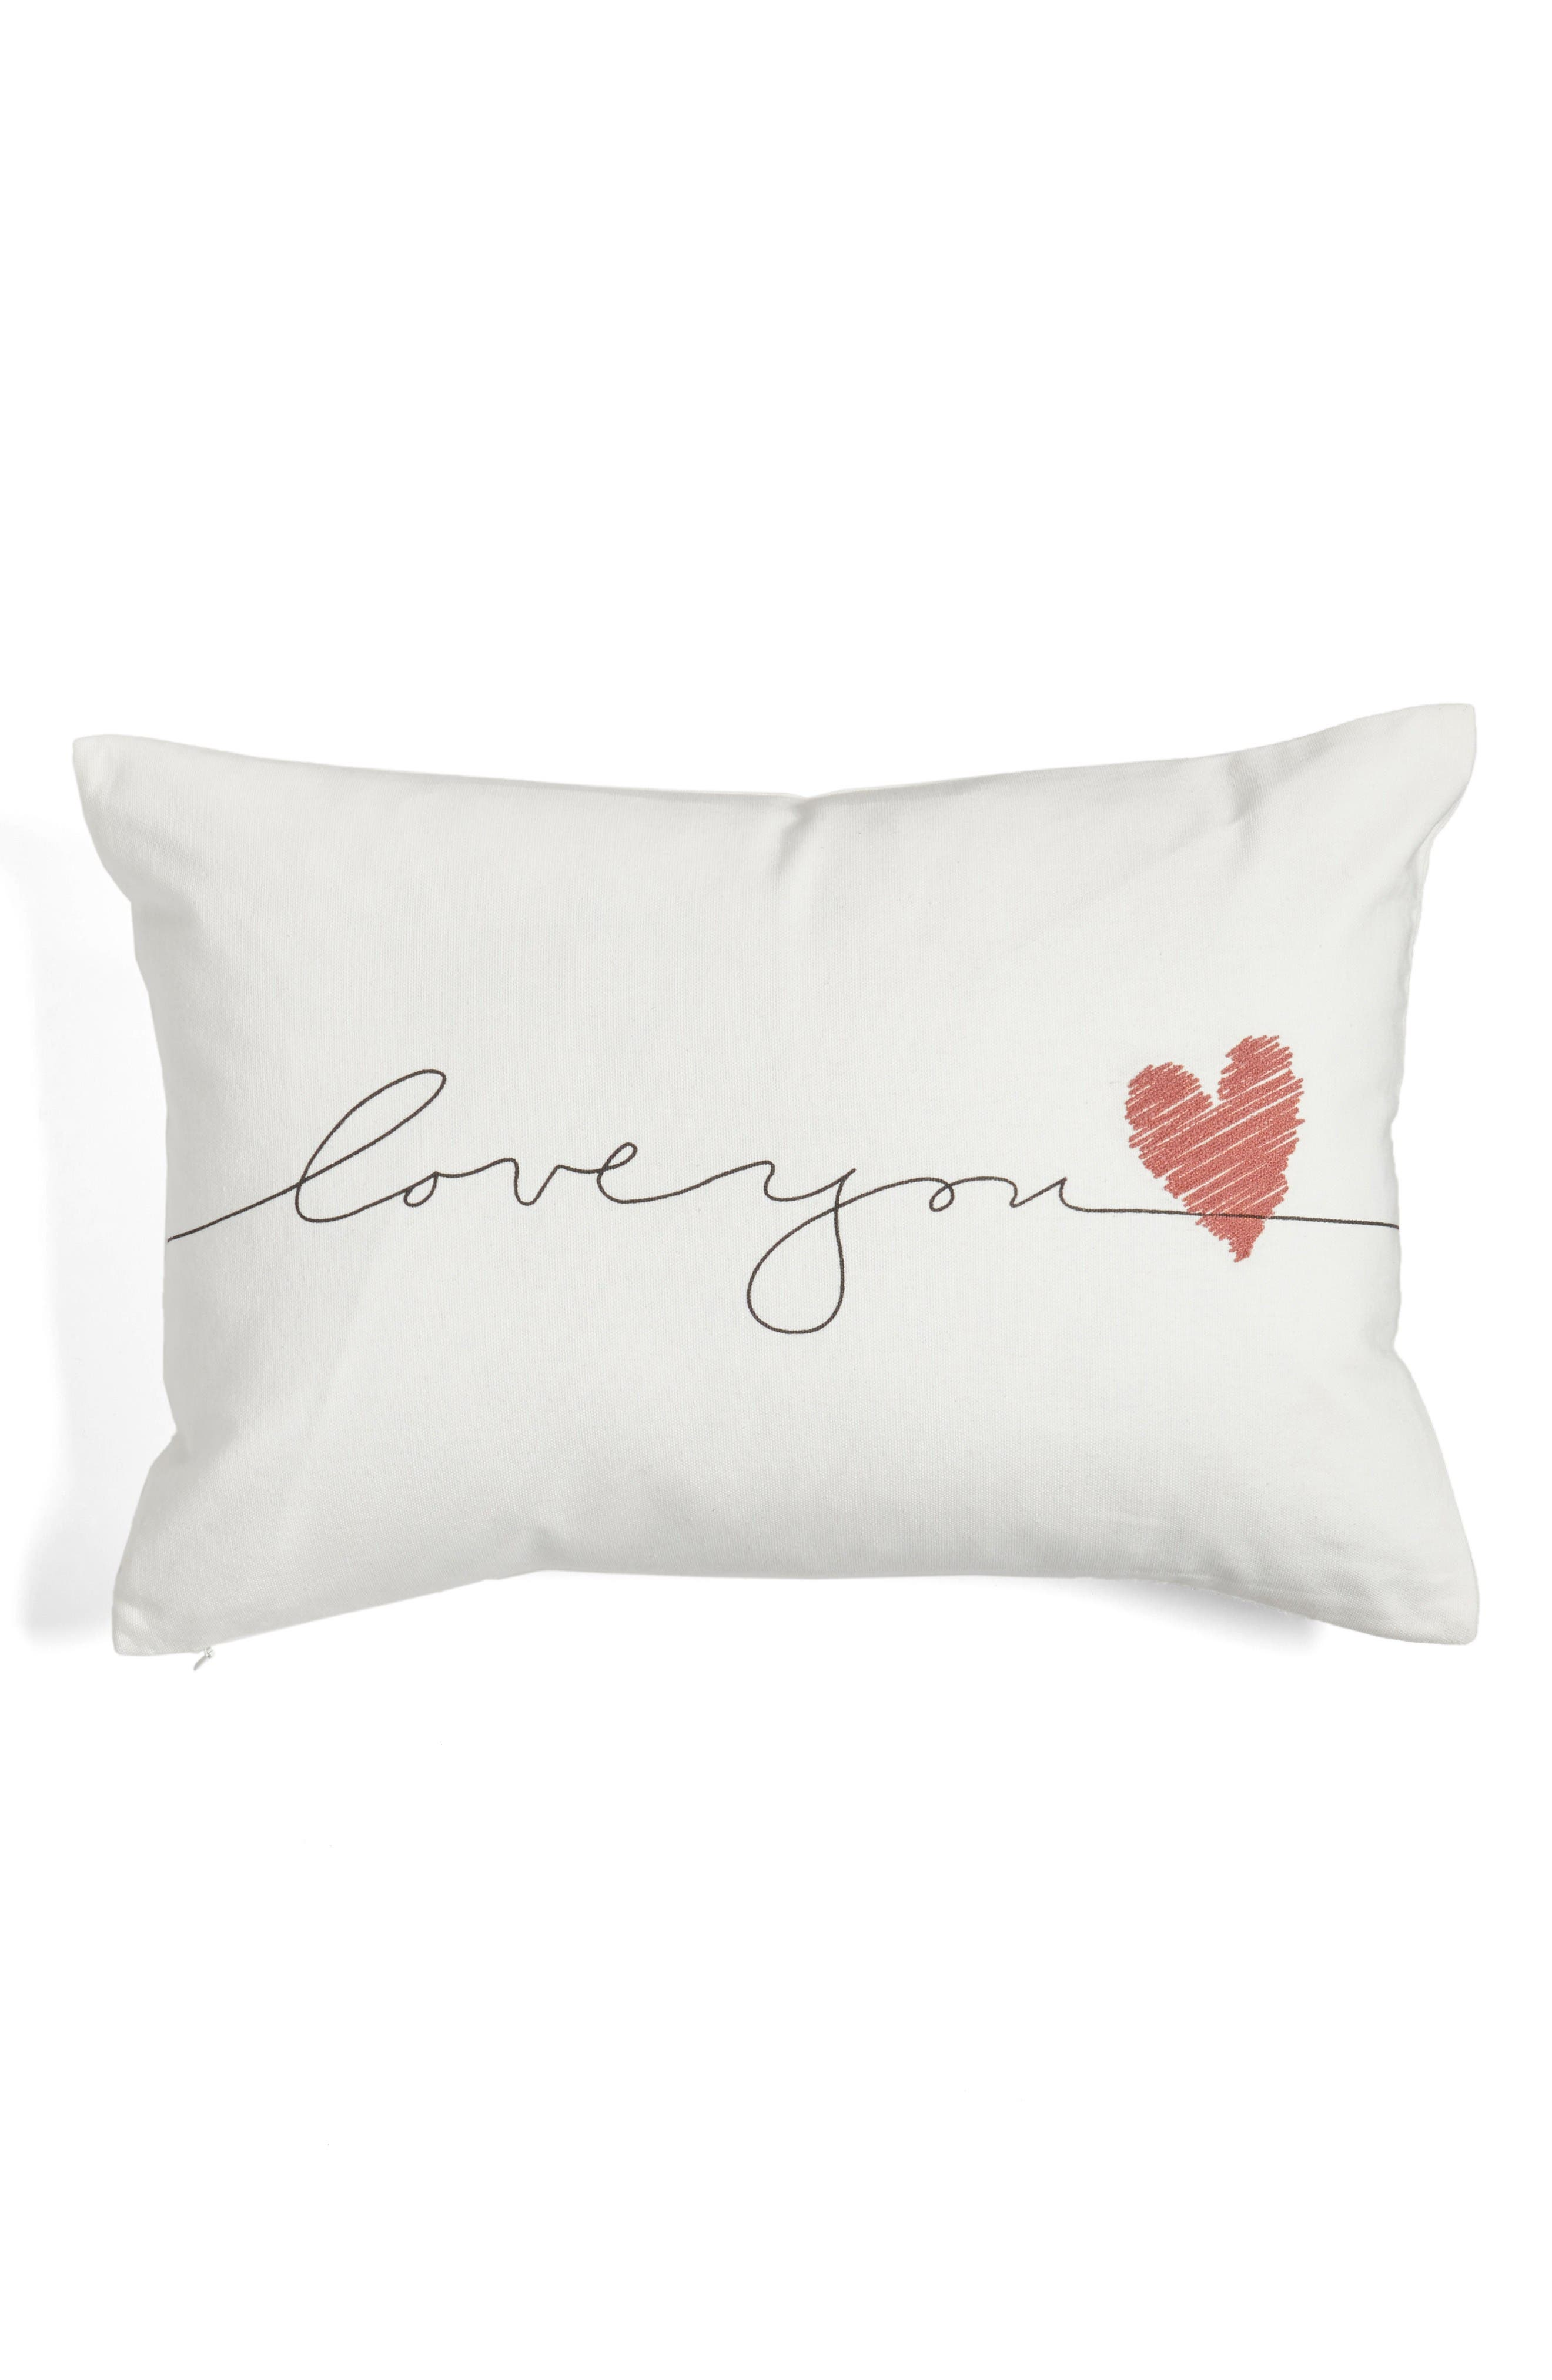 Nordstrom at Home Love You Accent Pillow